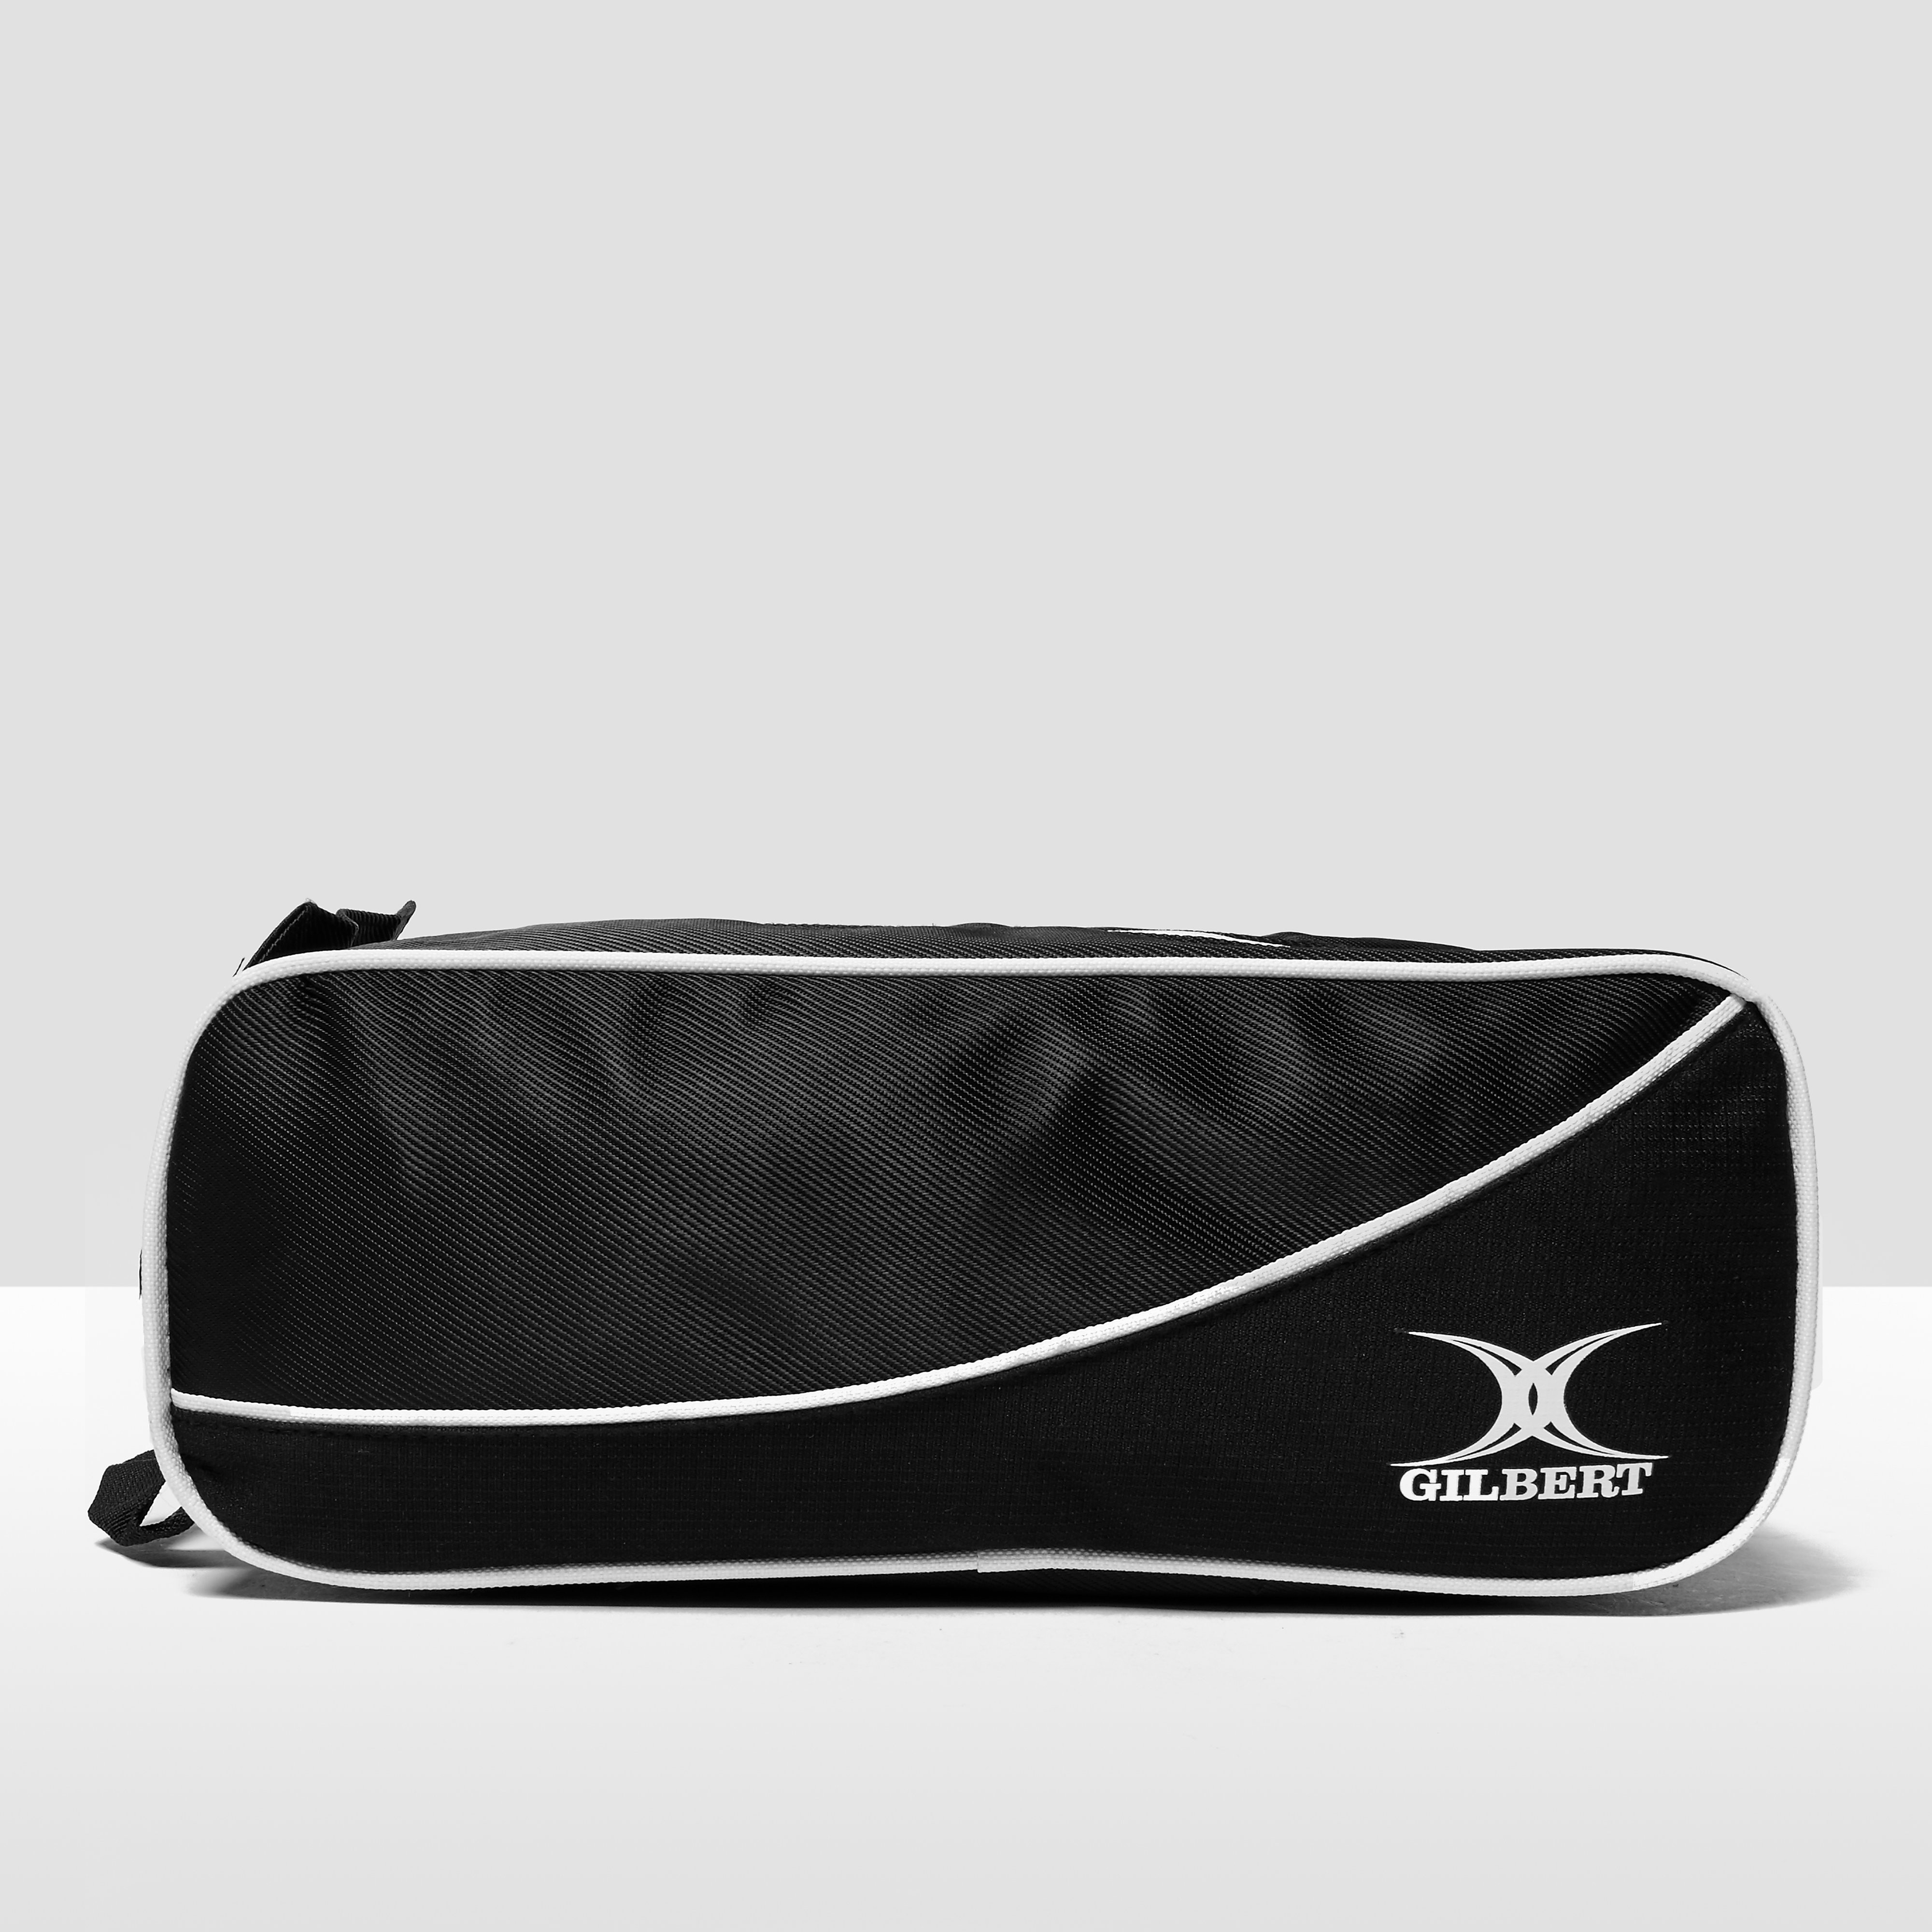 Gilbert Club Boot Bag V2